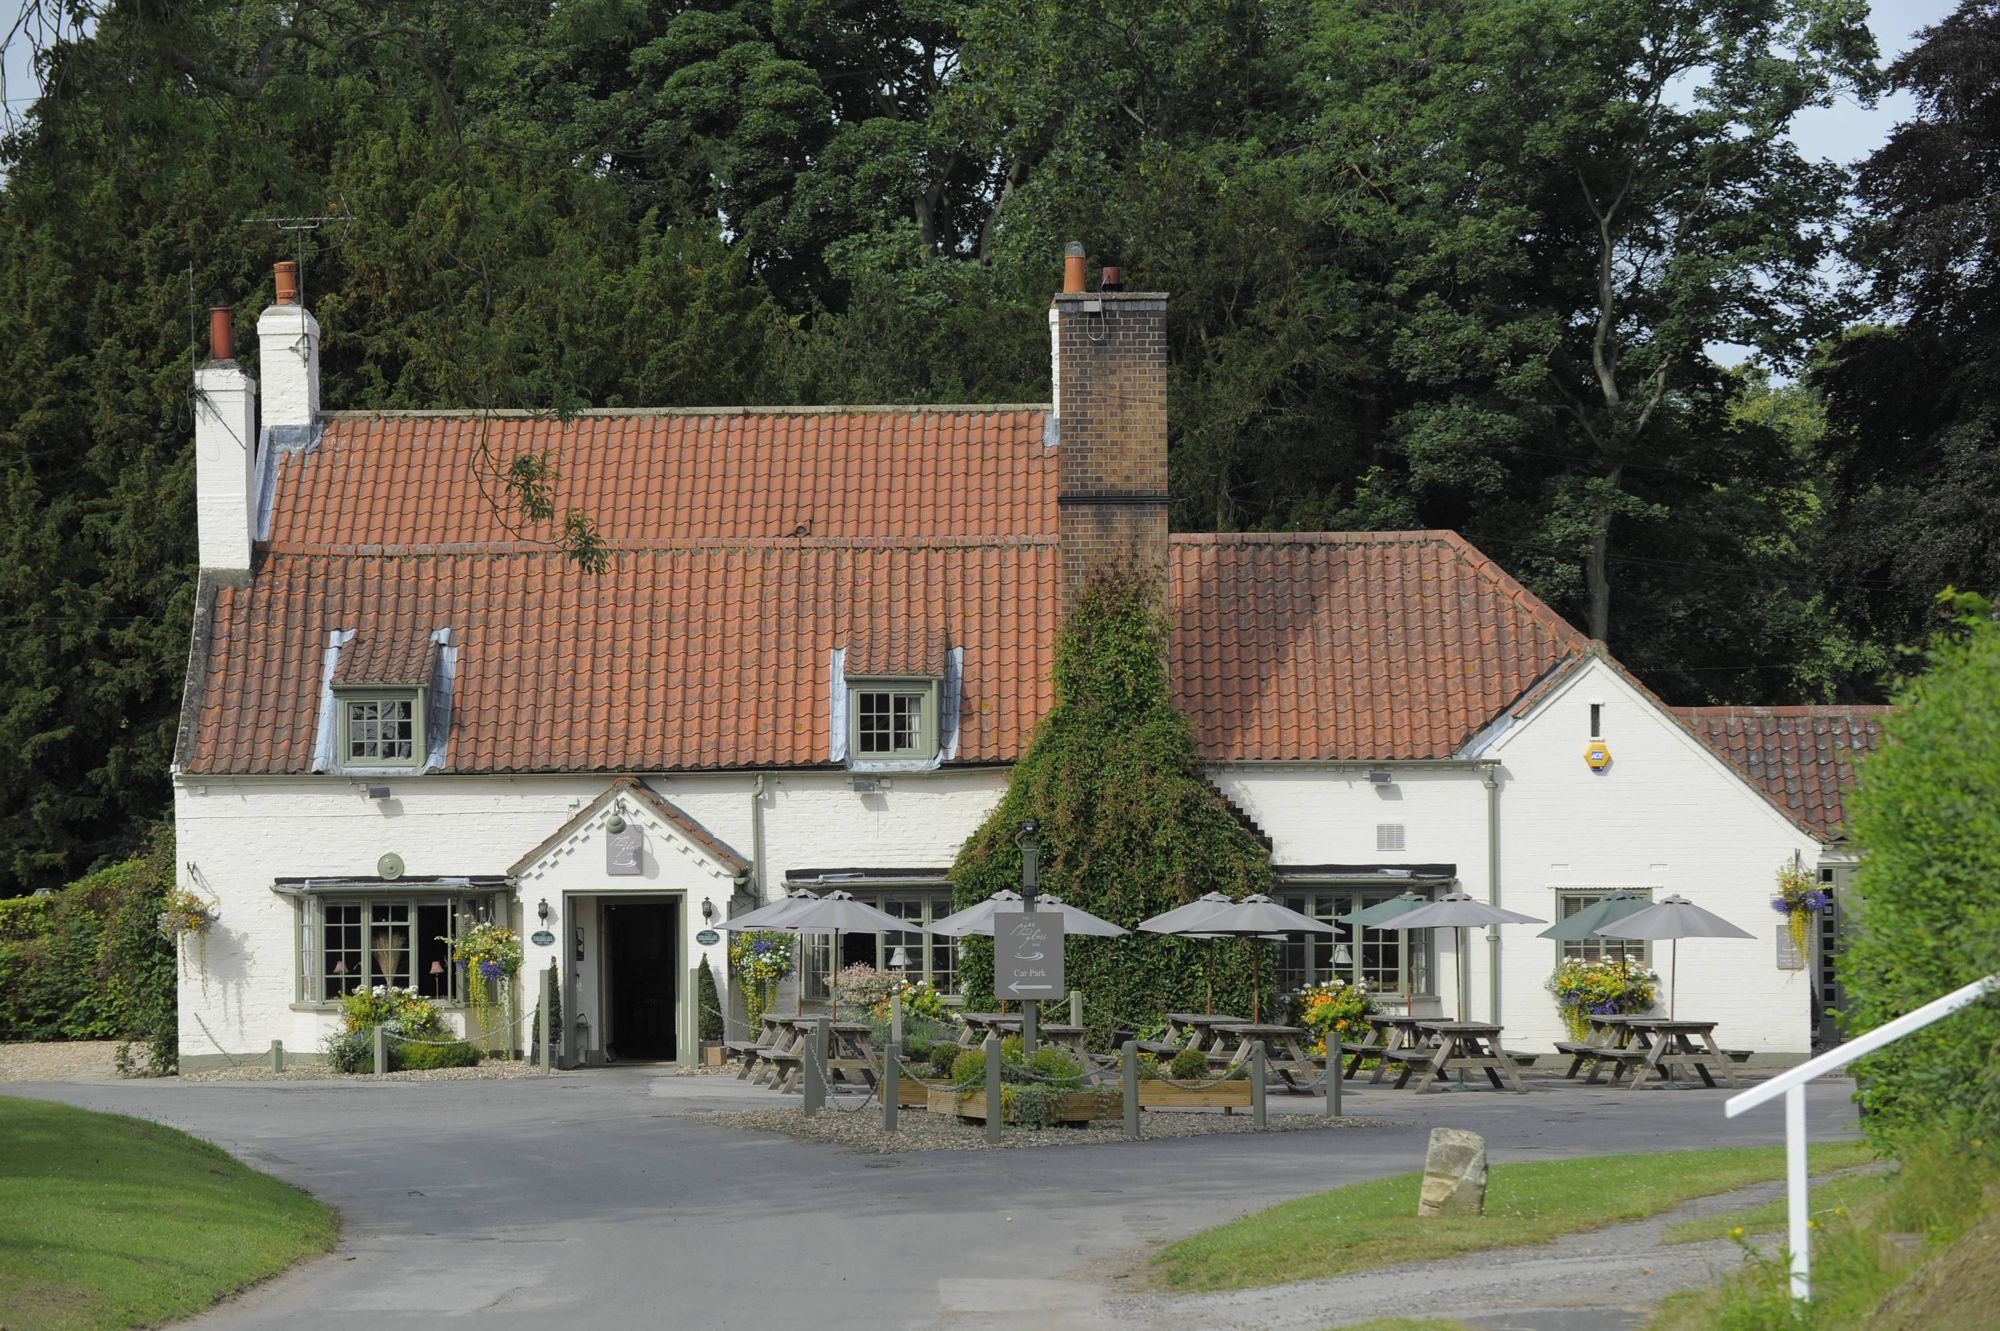 Hotels in East Riding of Yorkshire holidays at Cool Places